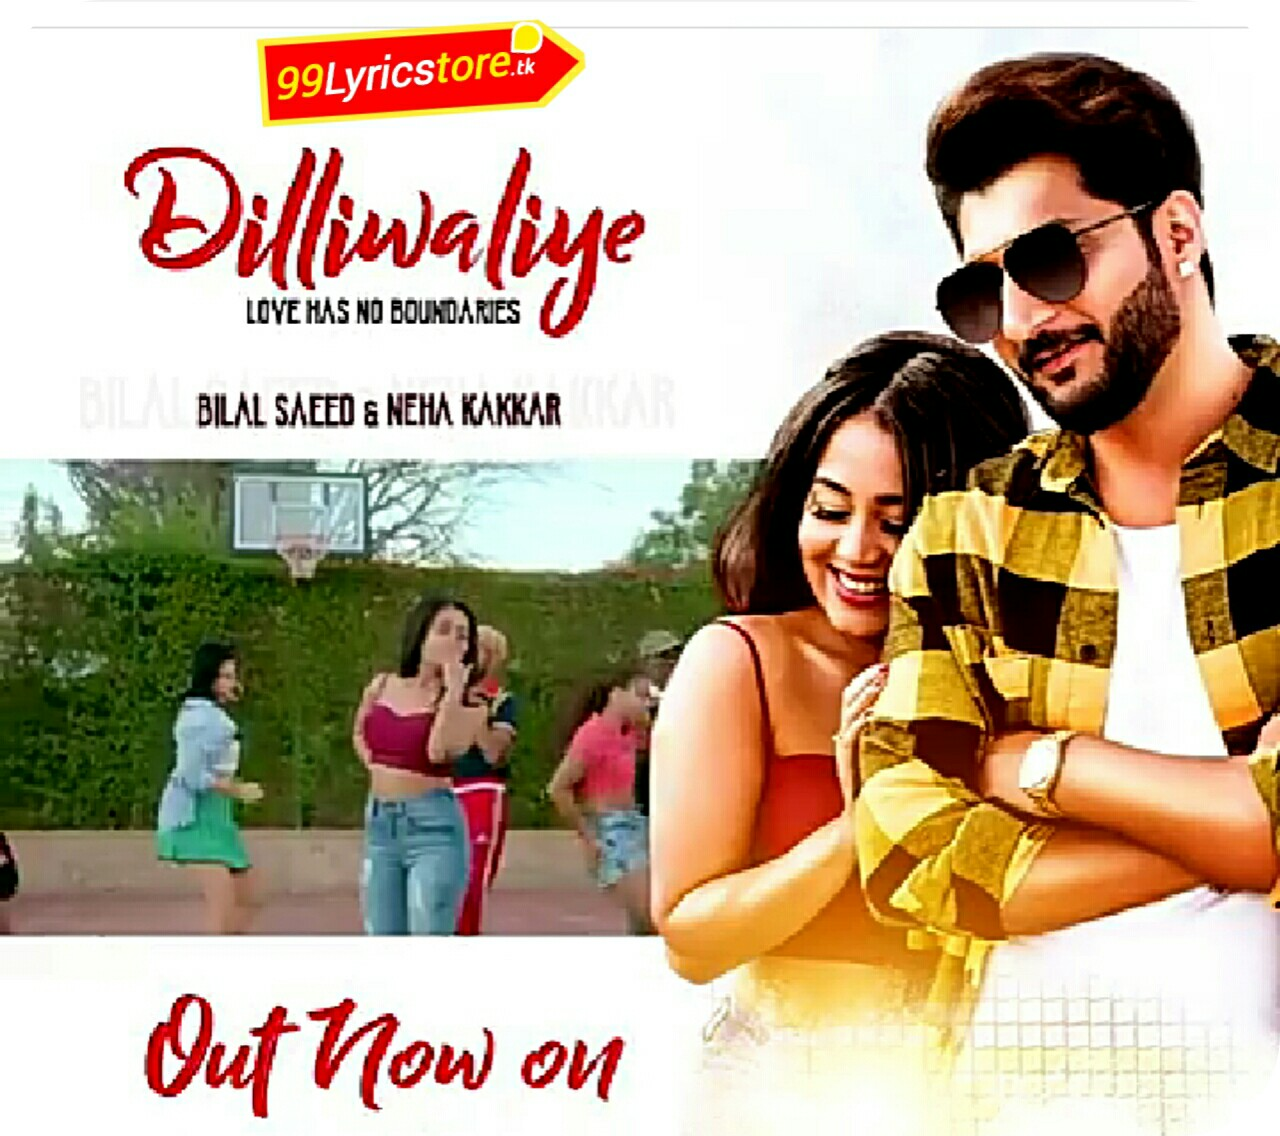 Neha Kakkar Song, Neha Kakkar Song Lyrics Dilliwaliye Song Lyrics – Neha Kakkar | Bilal Saeed | Latest Punjabi Song 2018, Bilal Saeed Song Lyrics 2018, Neha Kakkar Song 2018